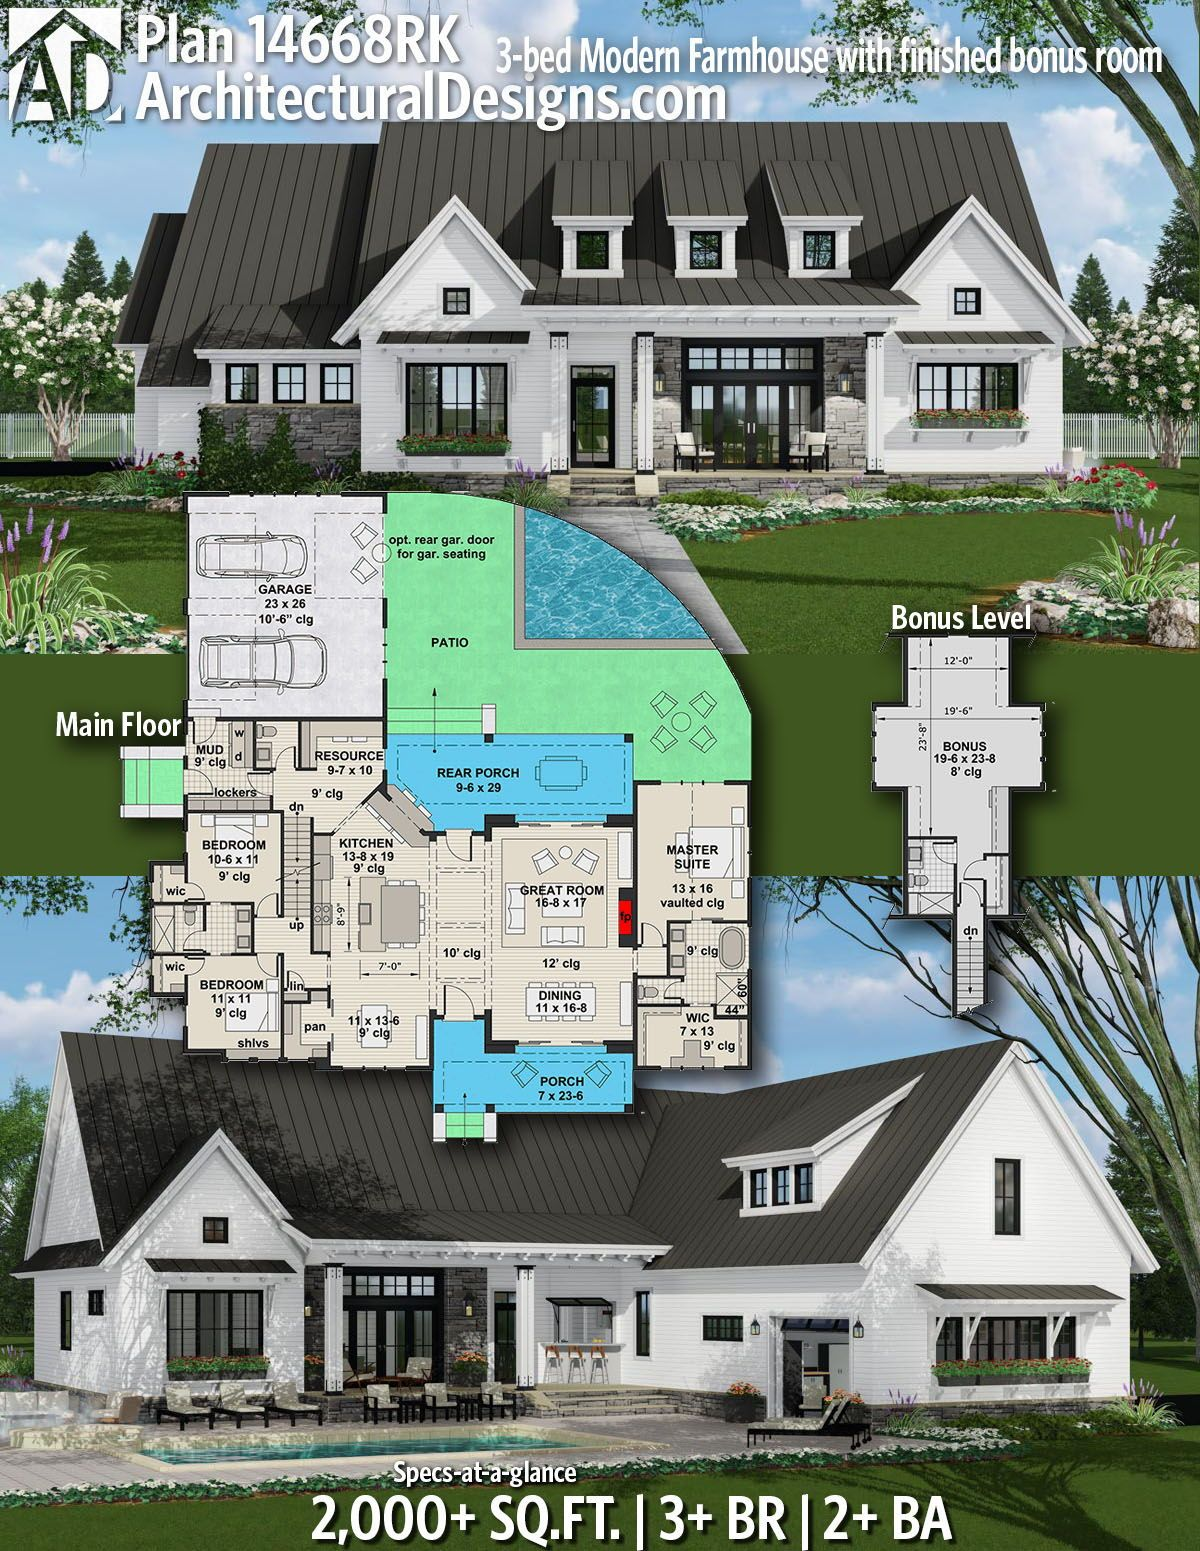 DesertRoseArchitectural Designs Farmhouse Plan 14668RK gives you